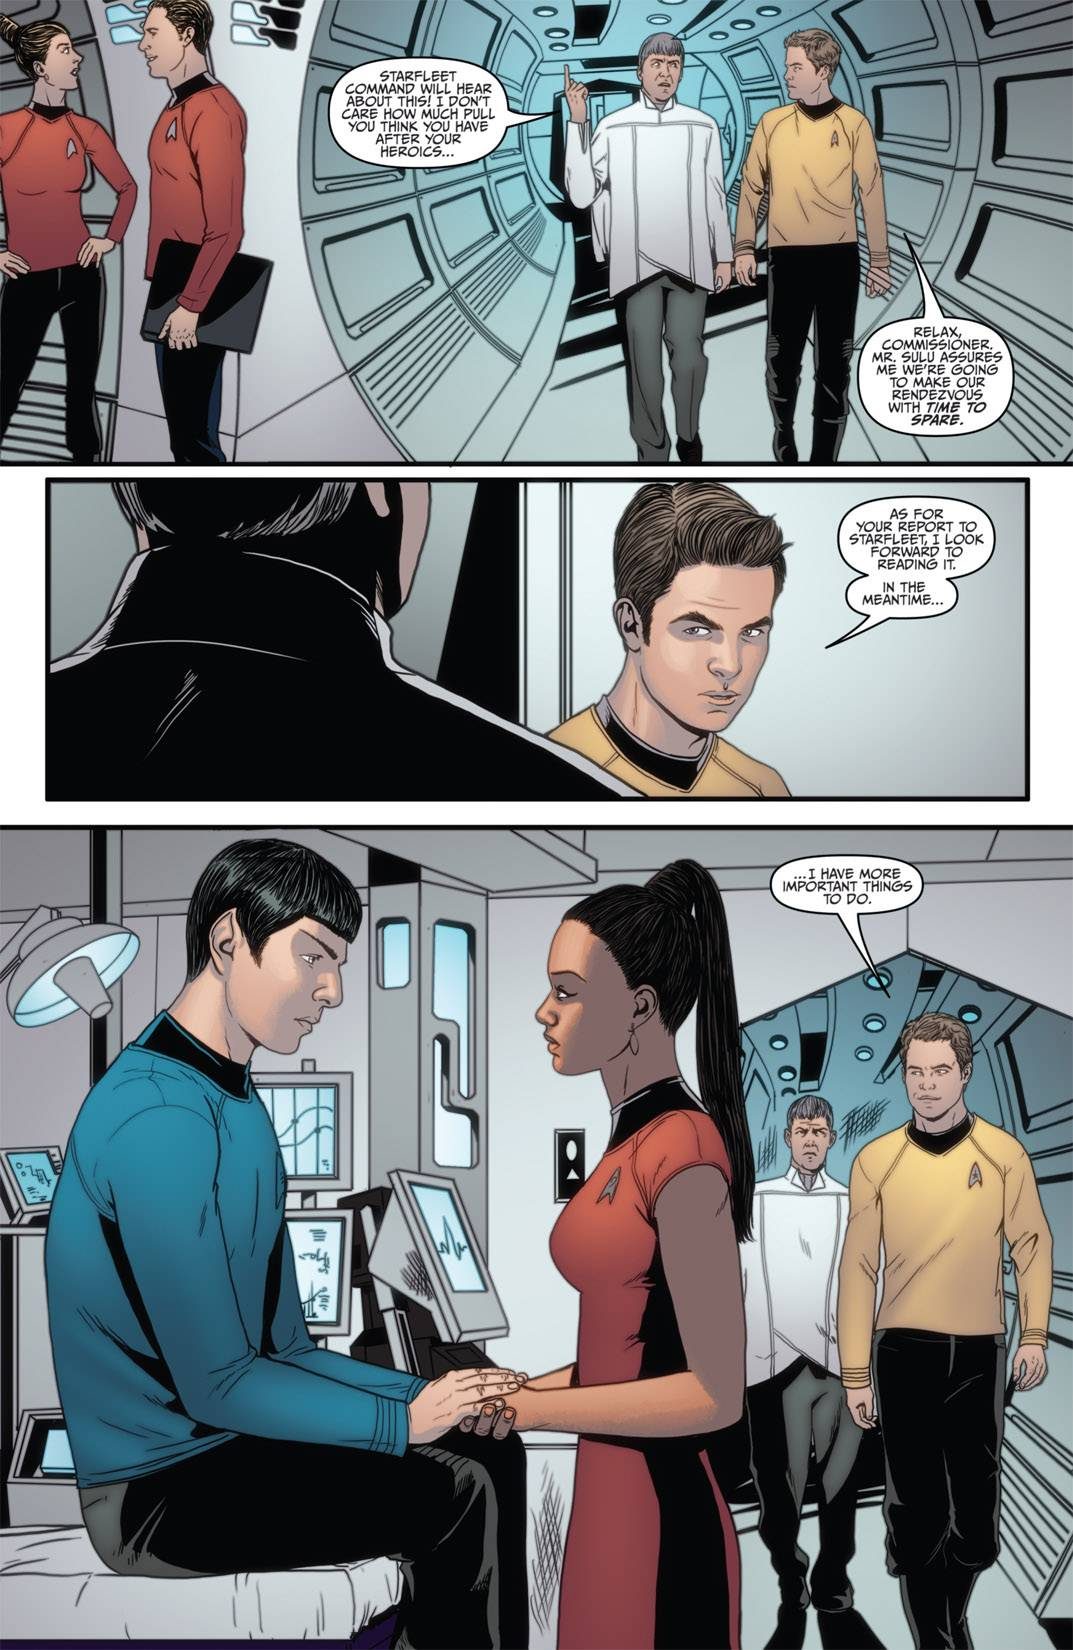 Star Trek Ongoing #4 (Spoilers)